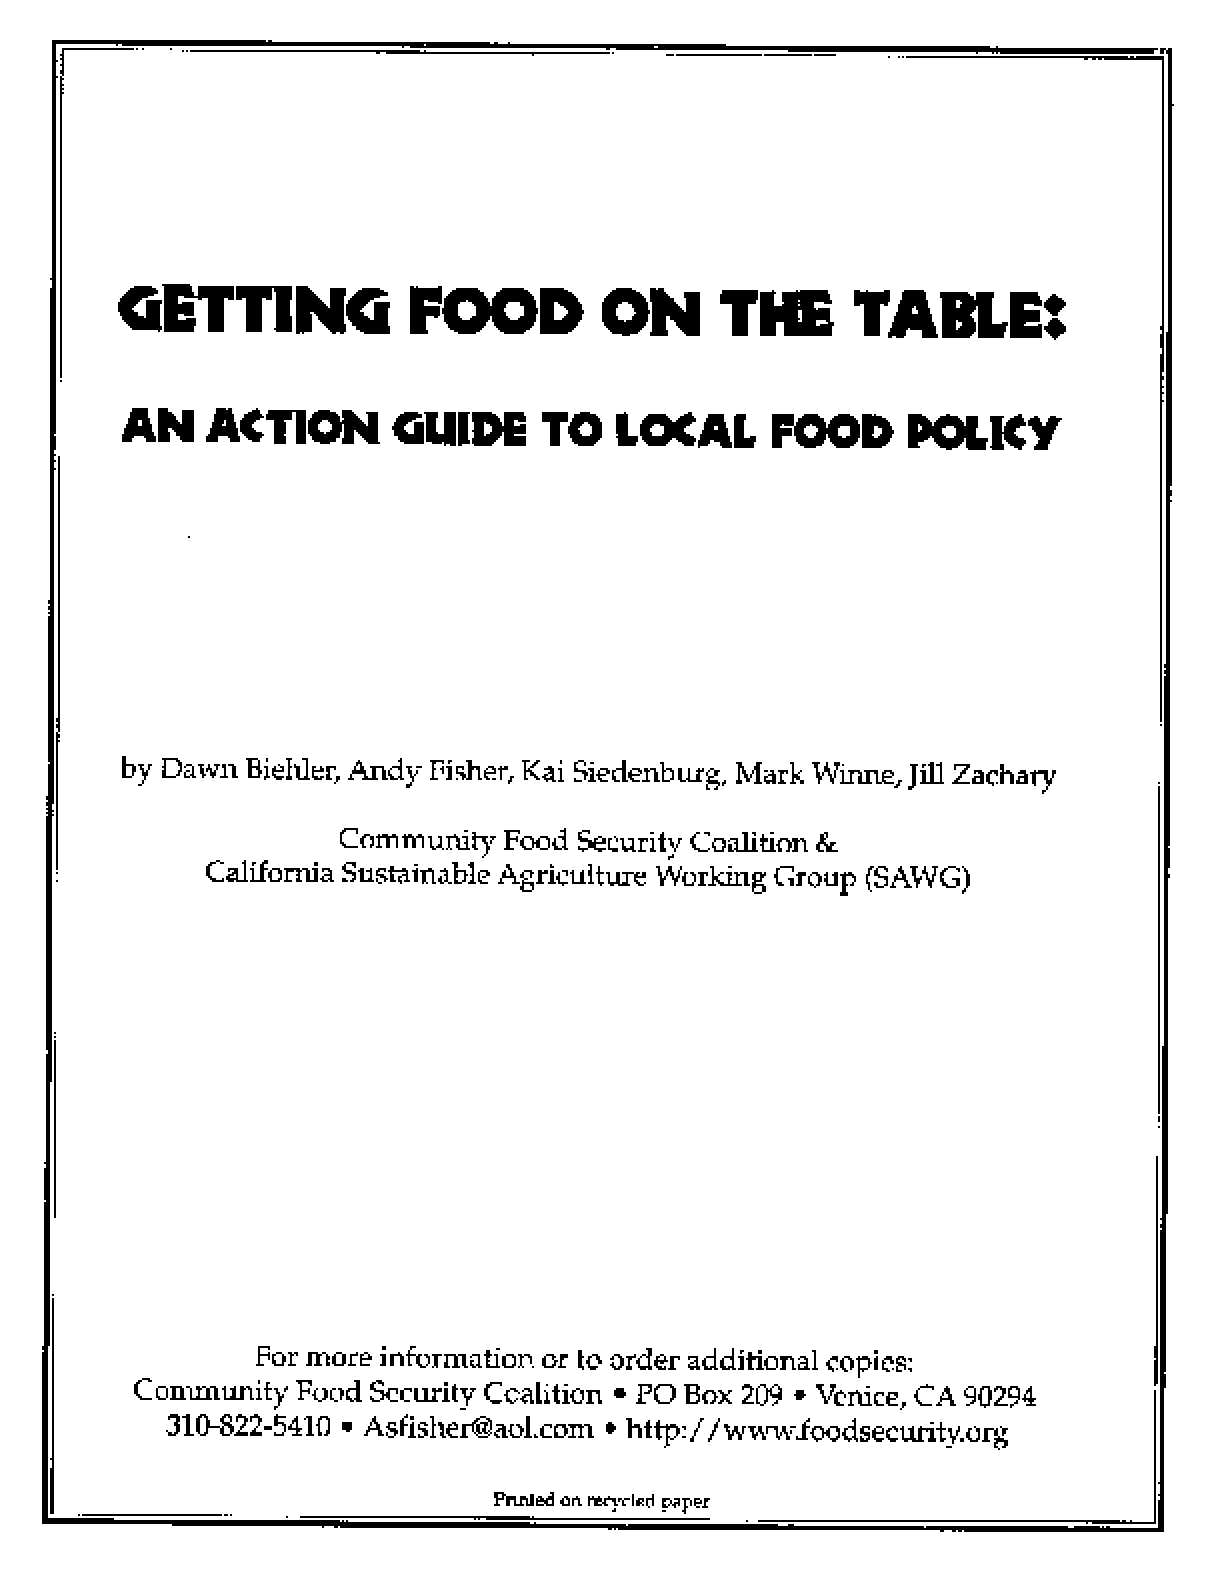 Getting Food on the Table: An Action Guide to Local Food Policy